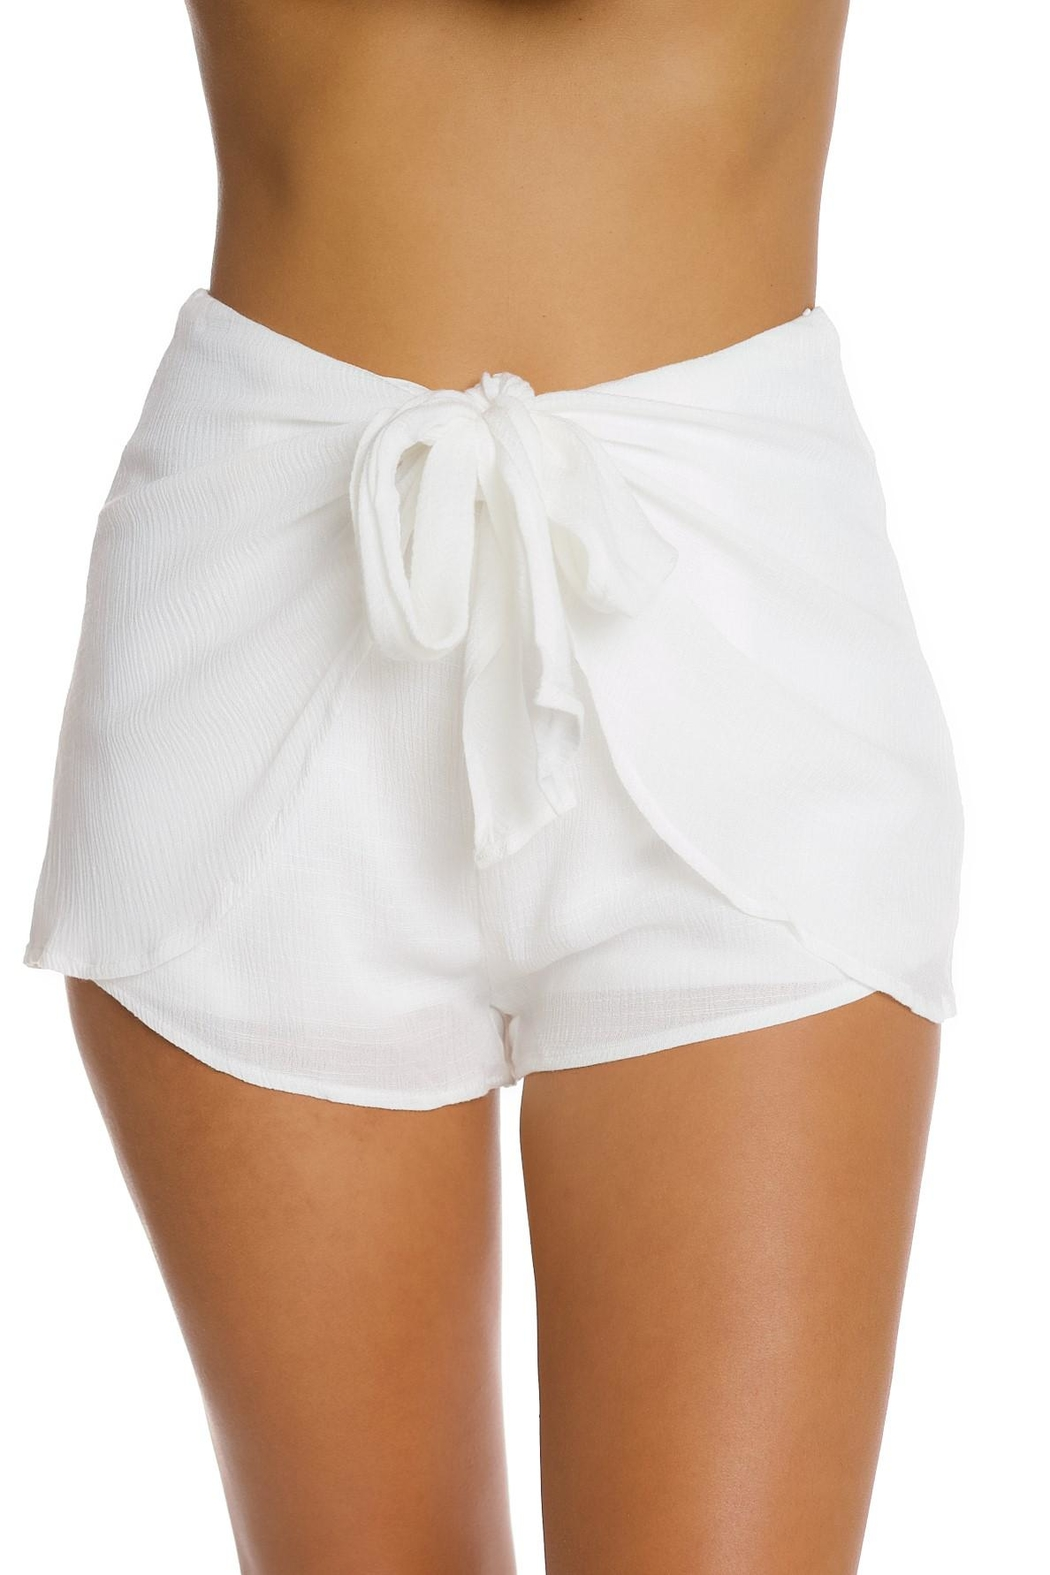 luxxel White Crinkle Shorts - Front Cropped Image